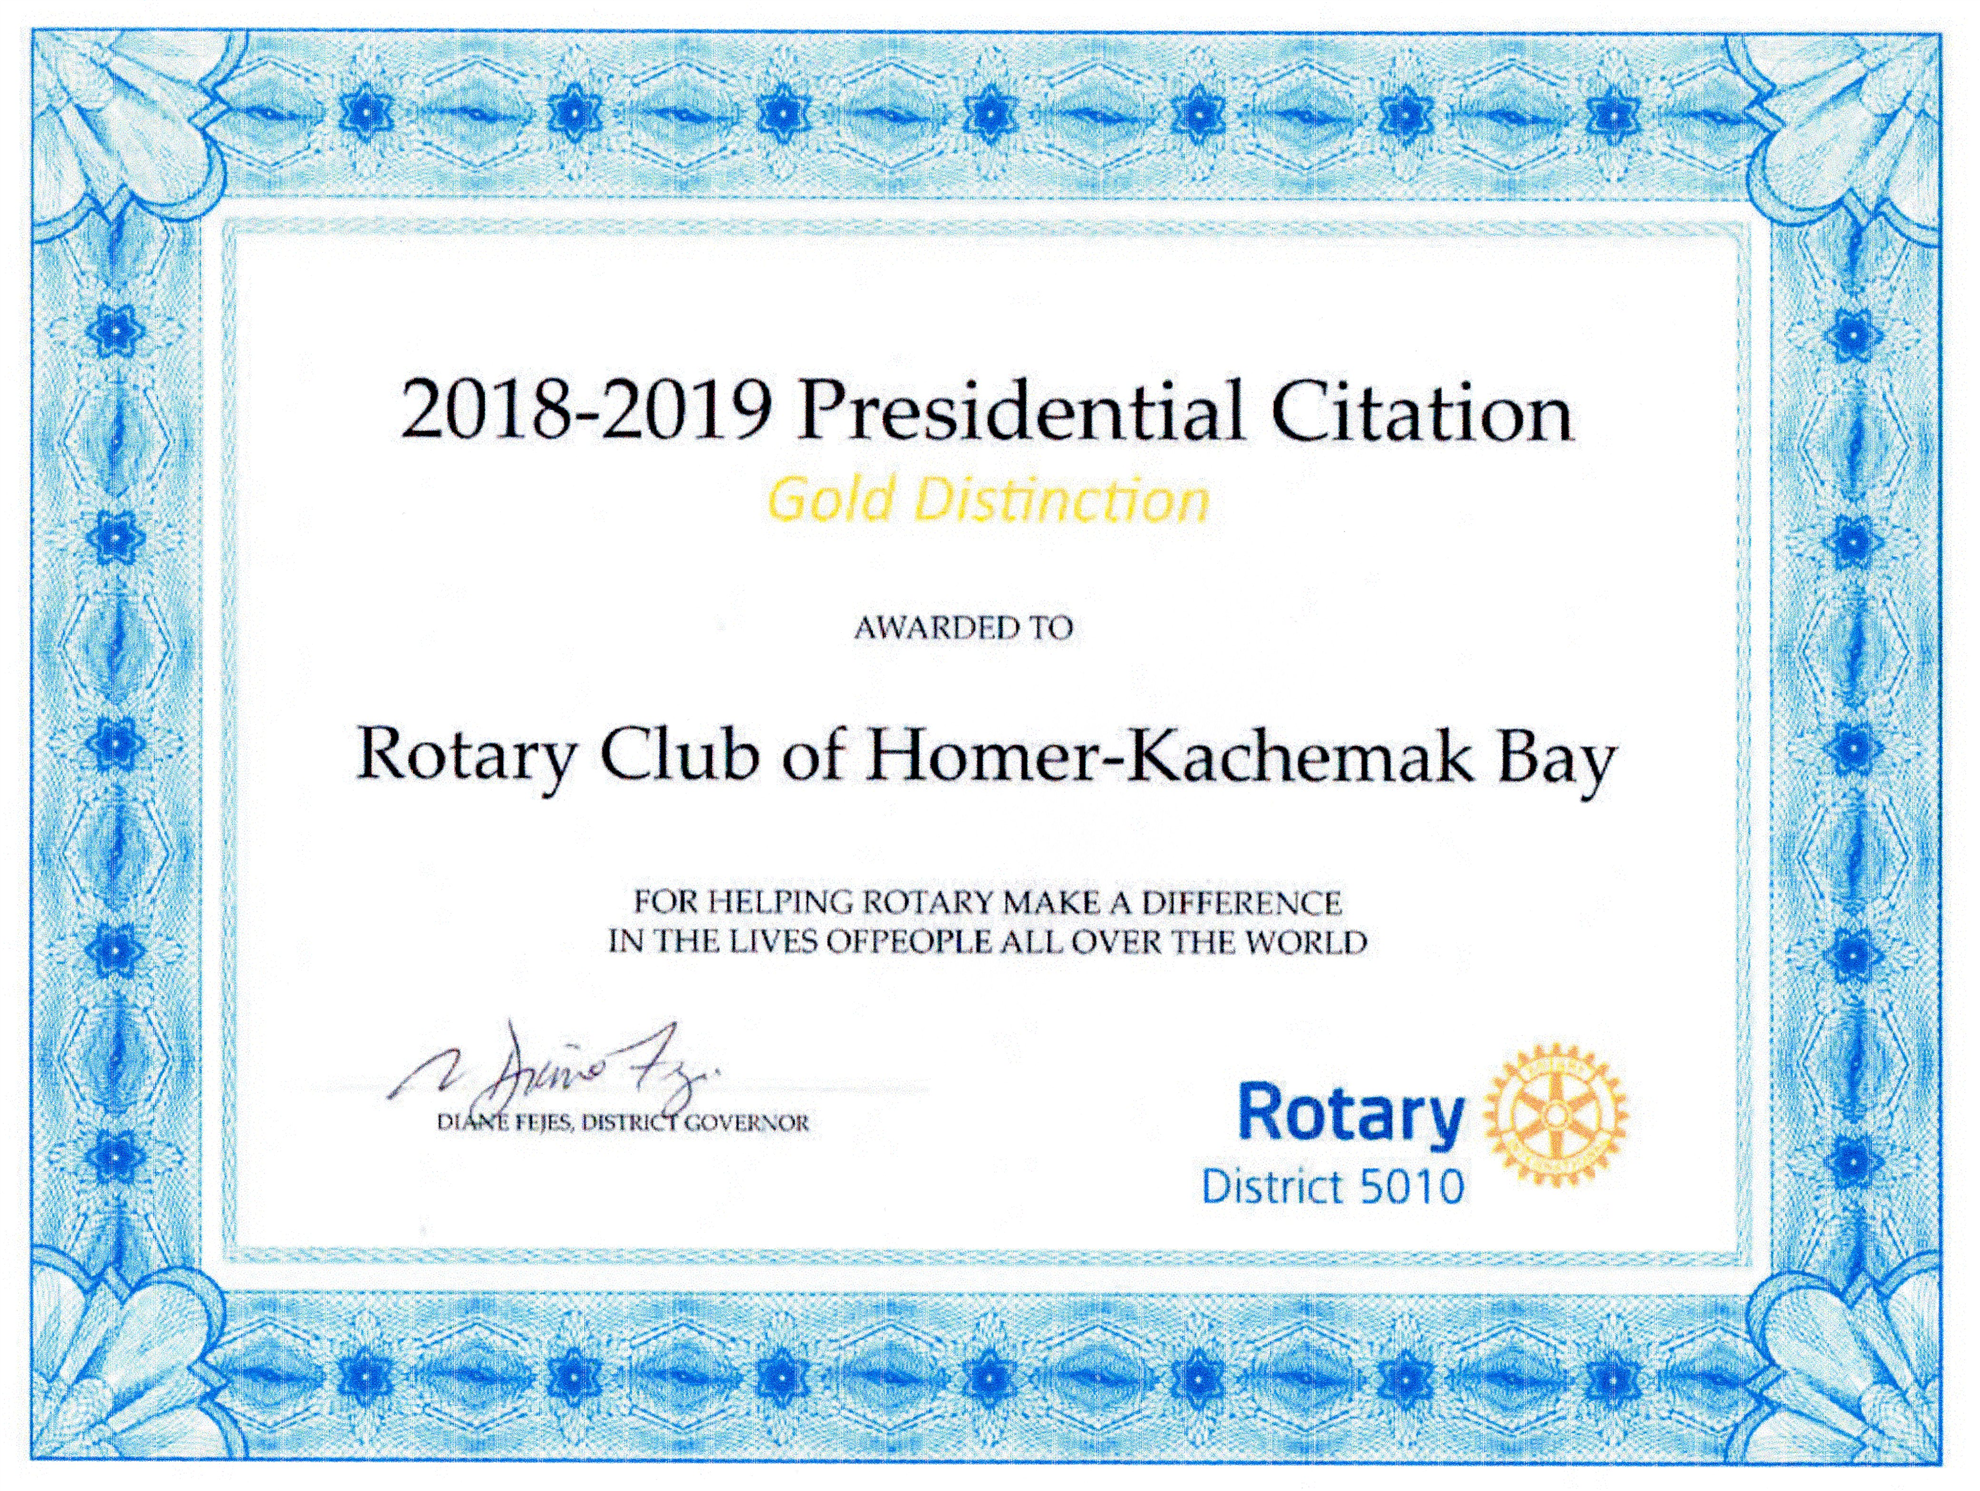 Stories | Rotary Club of Homer-Kachemak Bay